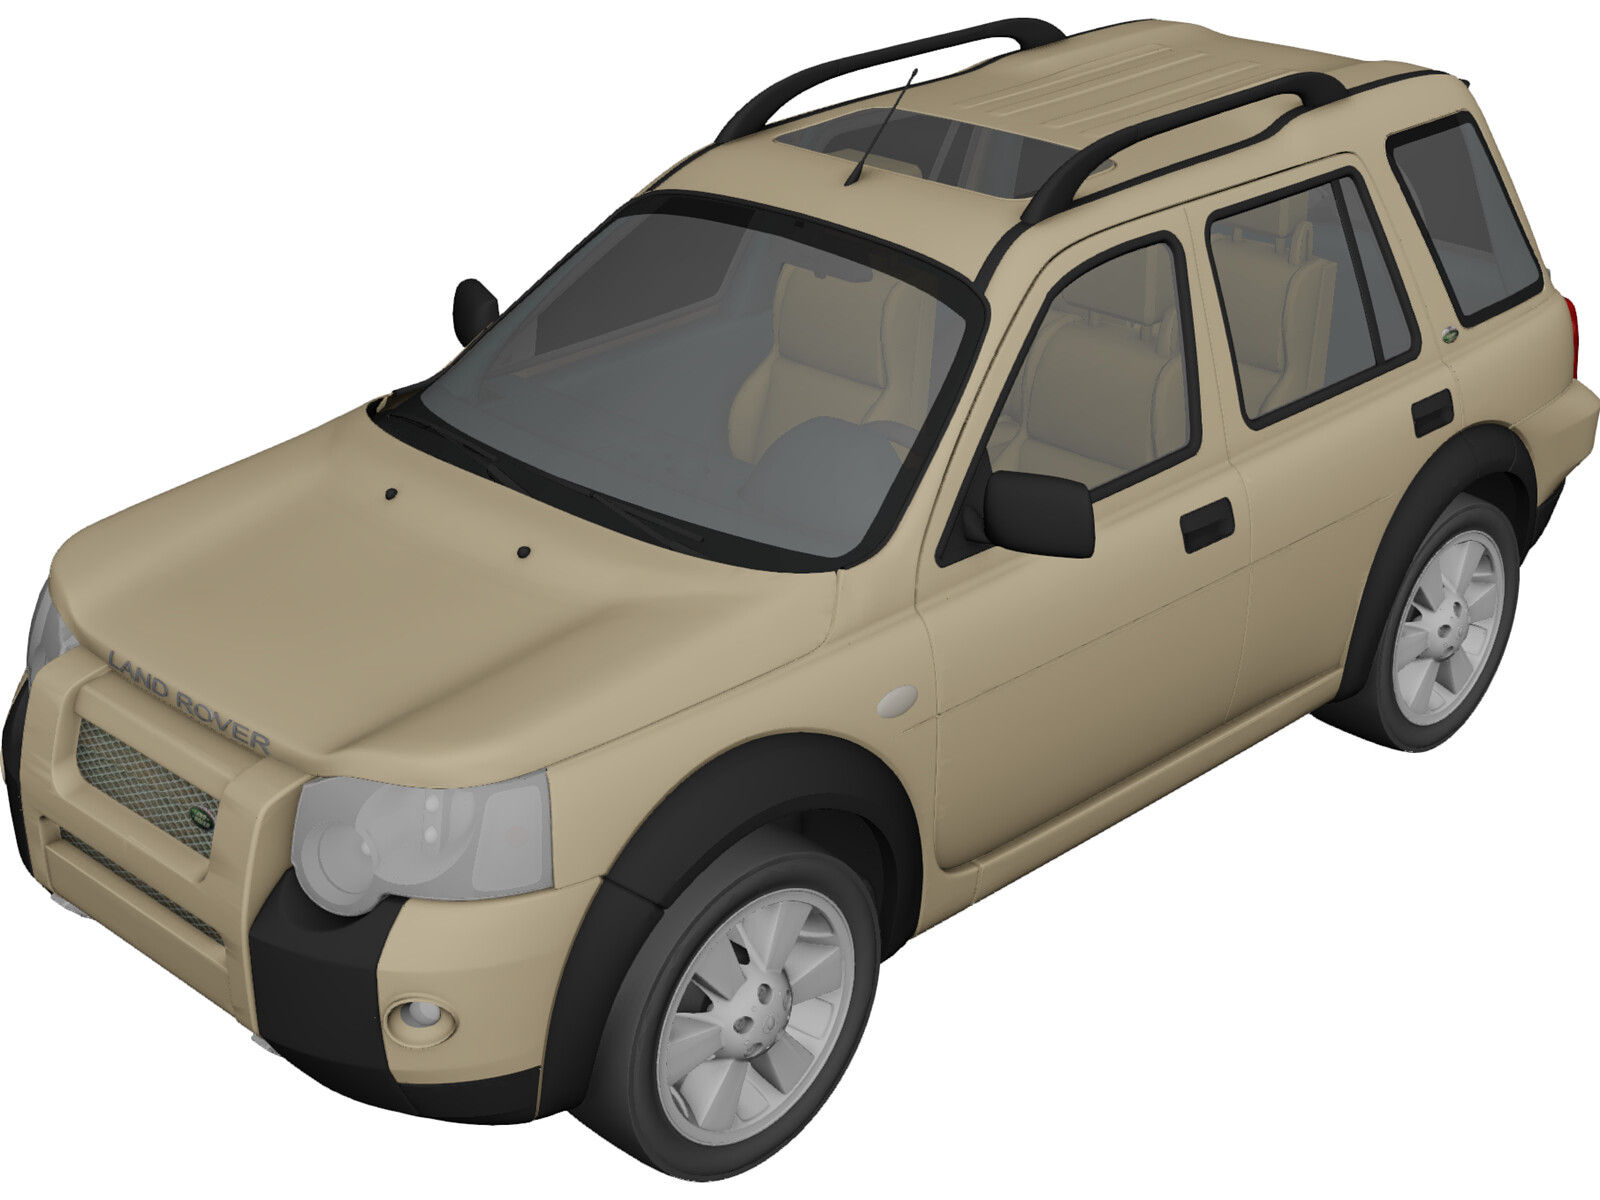 Land Rover Freelander Td4 (2004) 3D Model Download | 3D CAD Browser